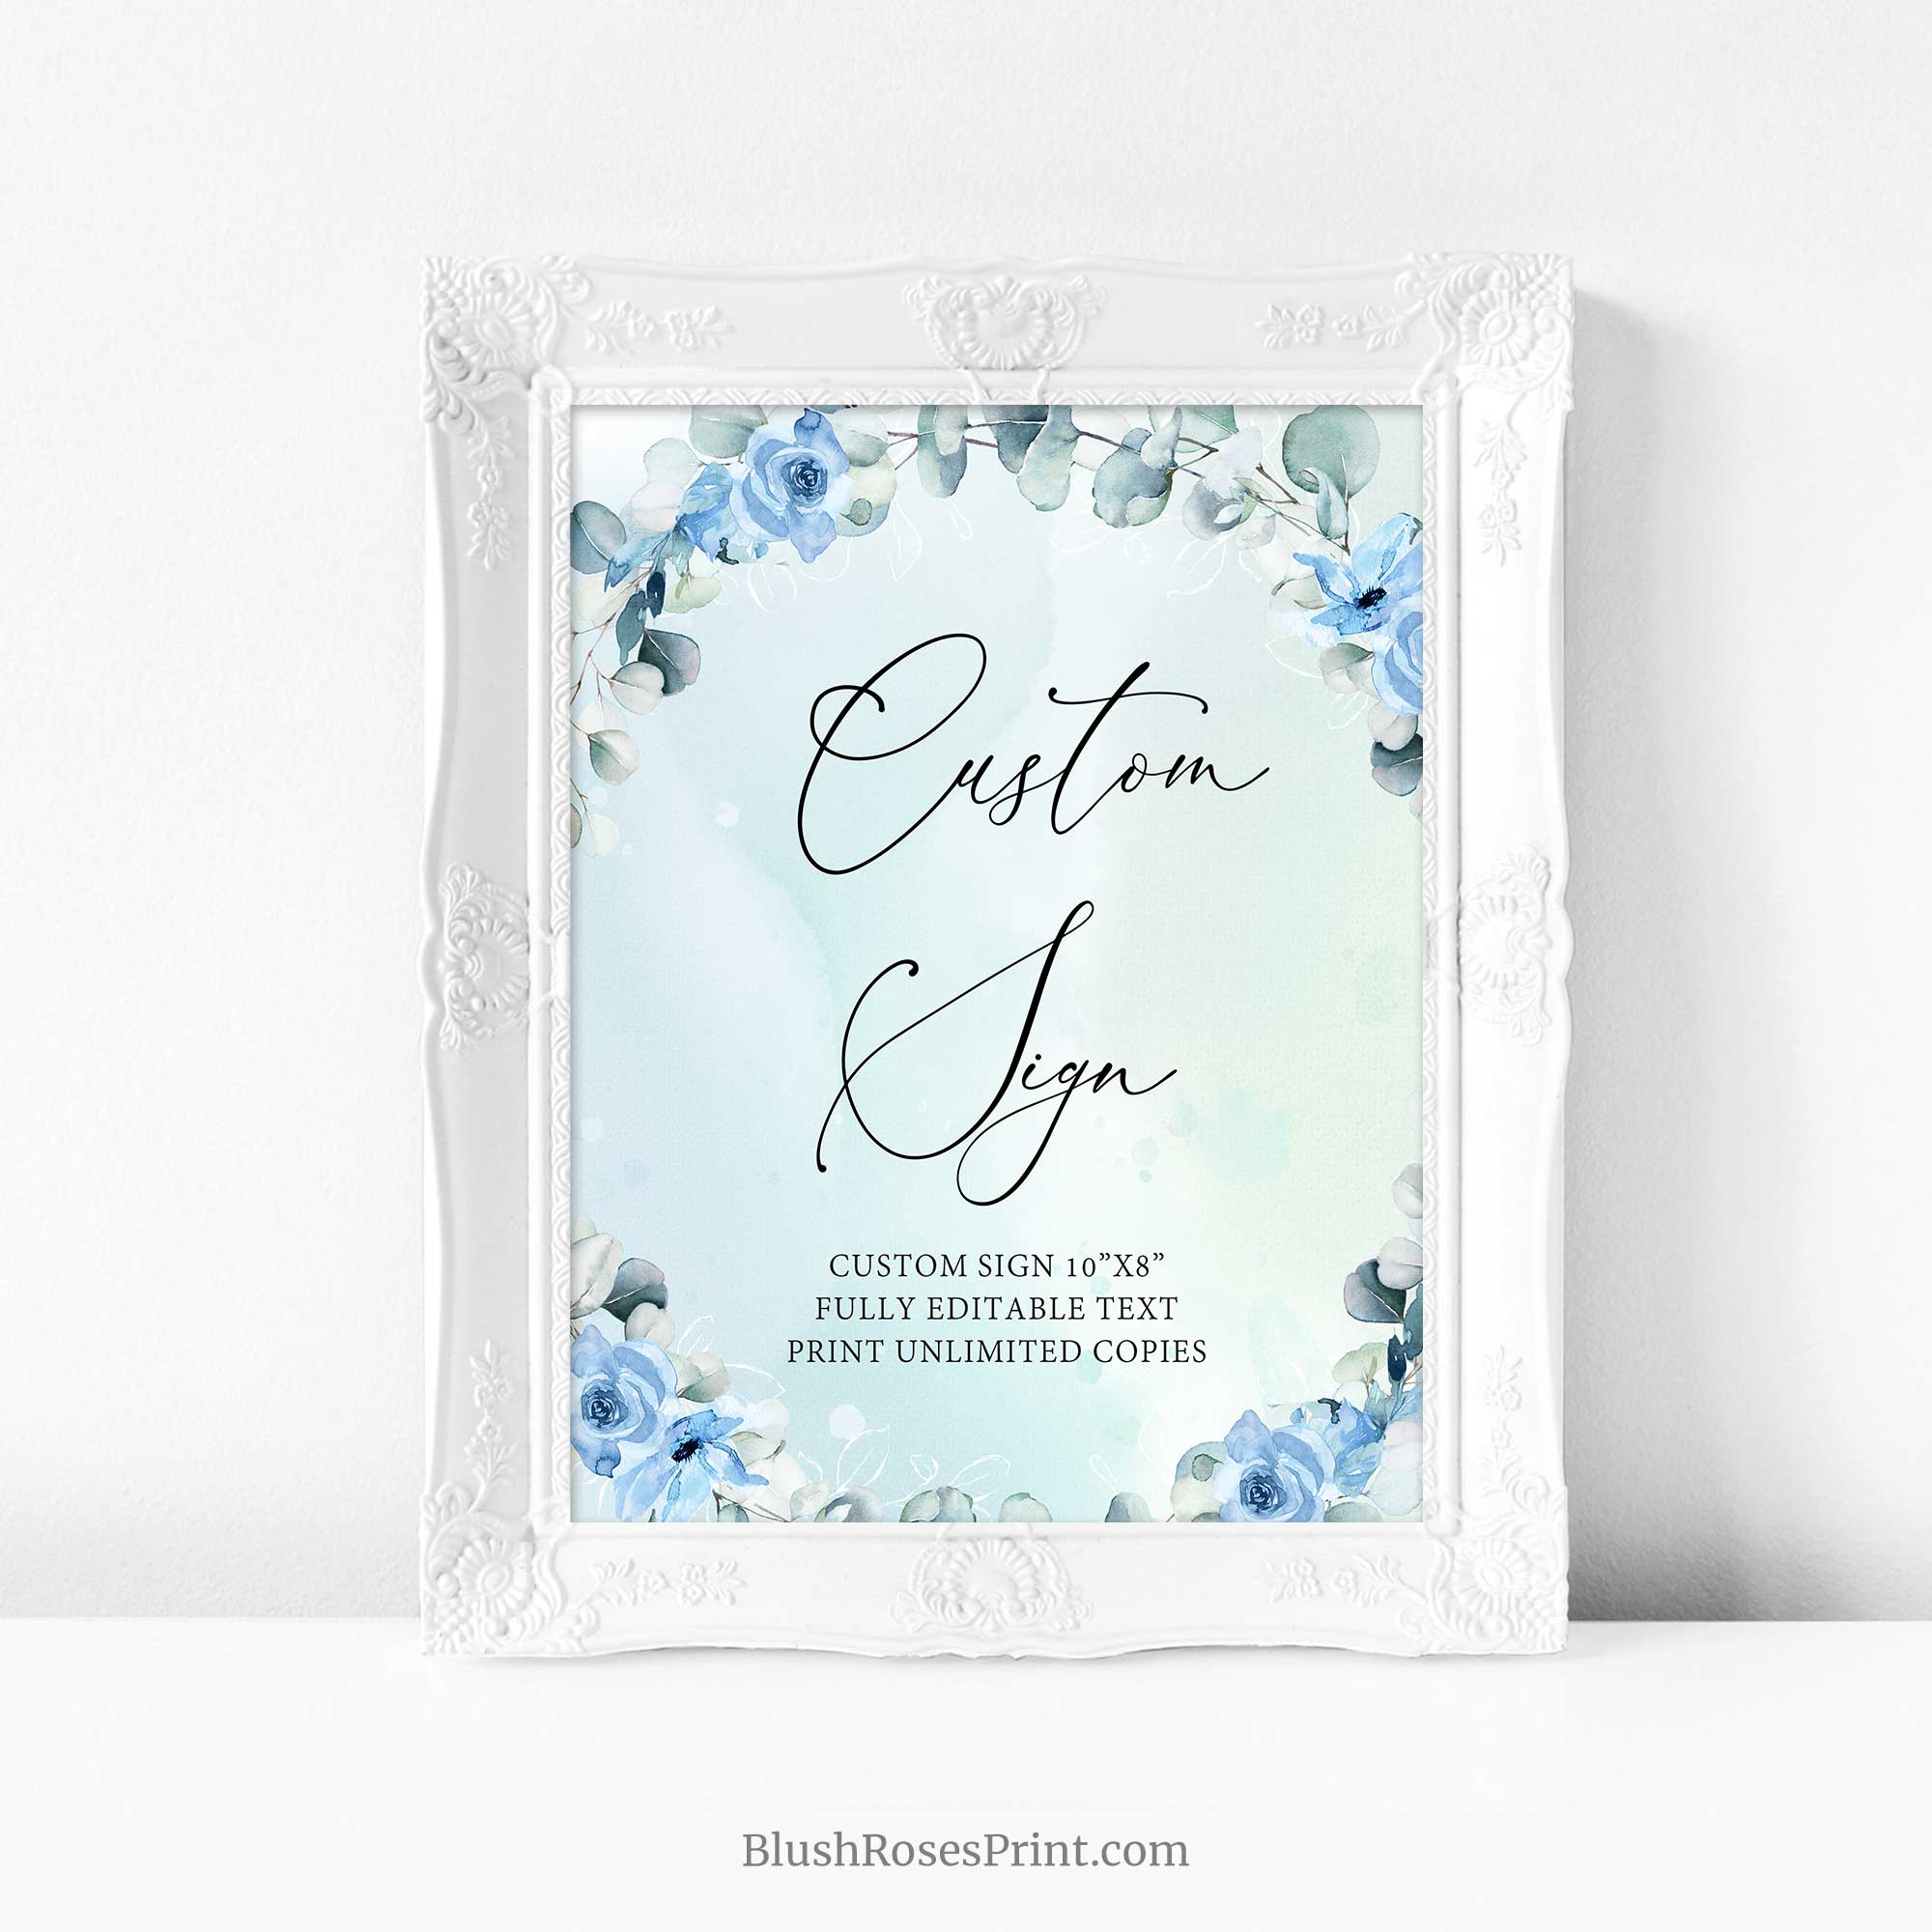 JOYS - Dusty Blue Custom Sign Template, Editable Boho Sign, INSTANT DOWNLOAD, Blue Floral Wreath Sign, Printable Sign, Eucalyptus Wreath